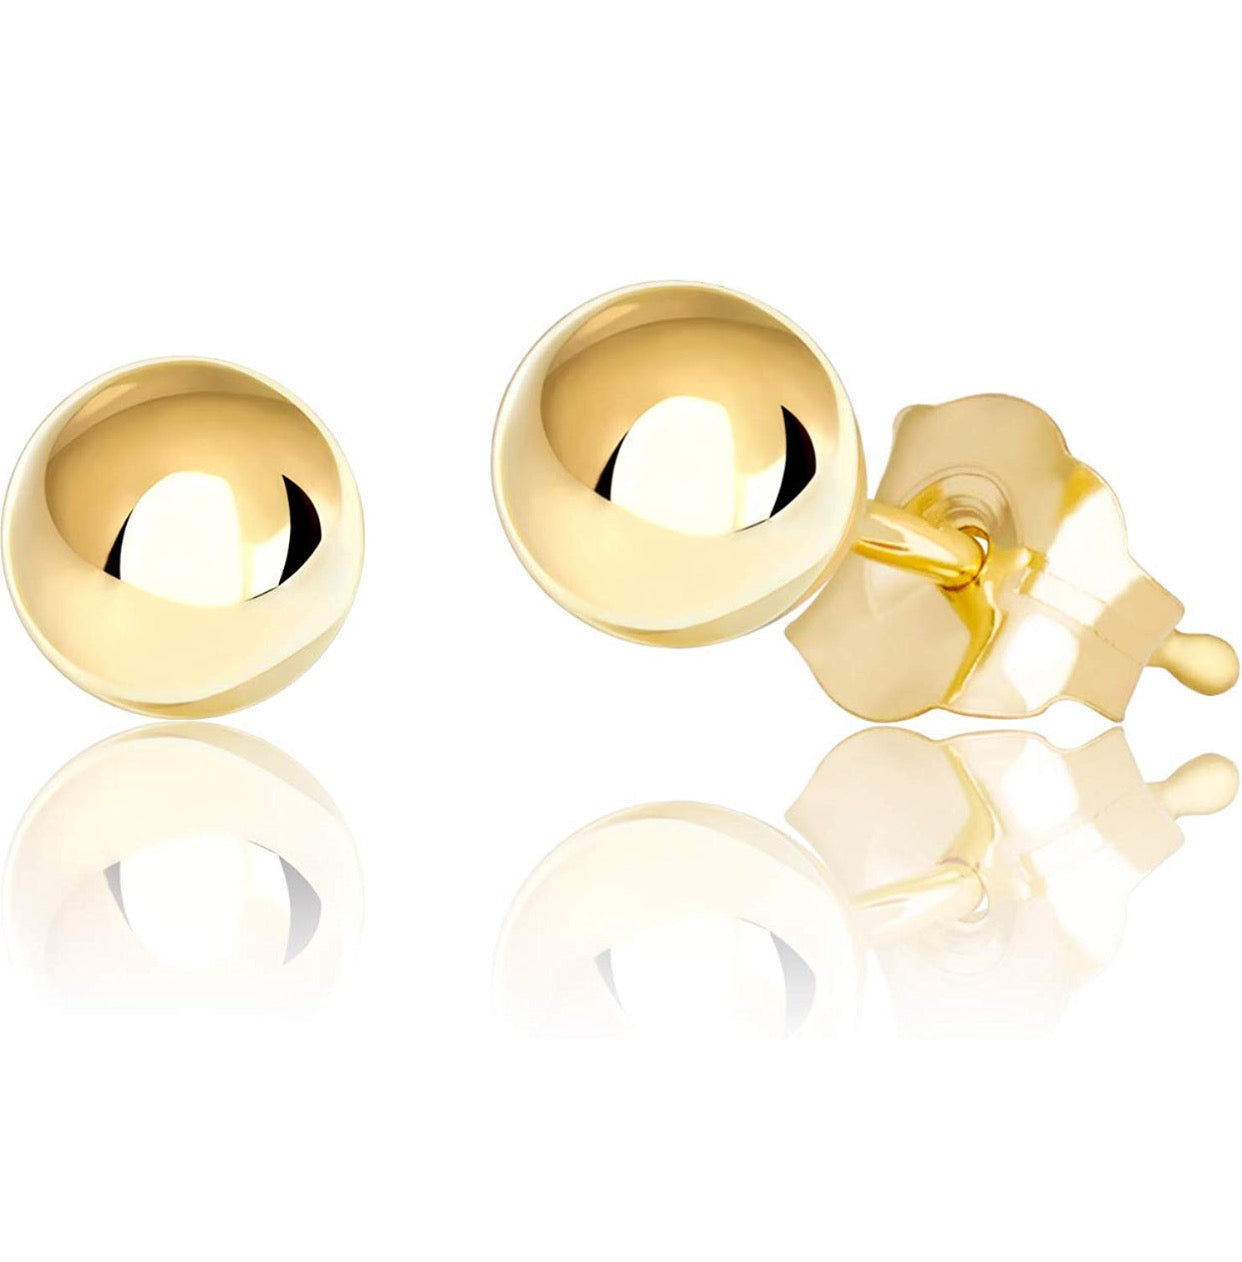 B0725YSGKL 14K Yellow Gold Ball Stud Earring